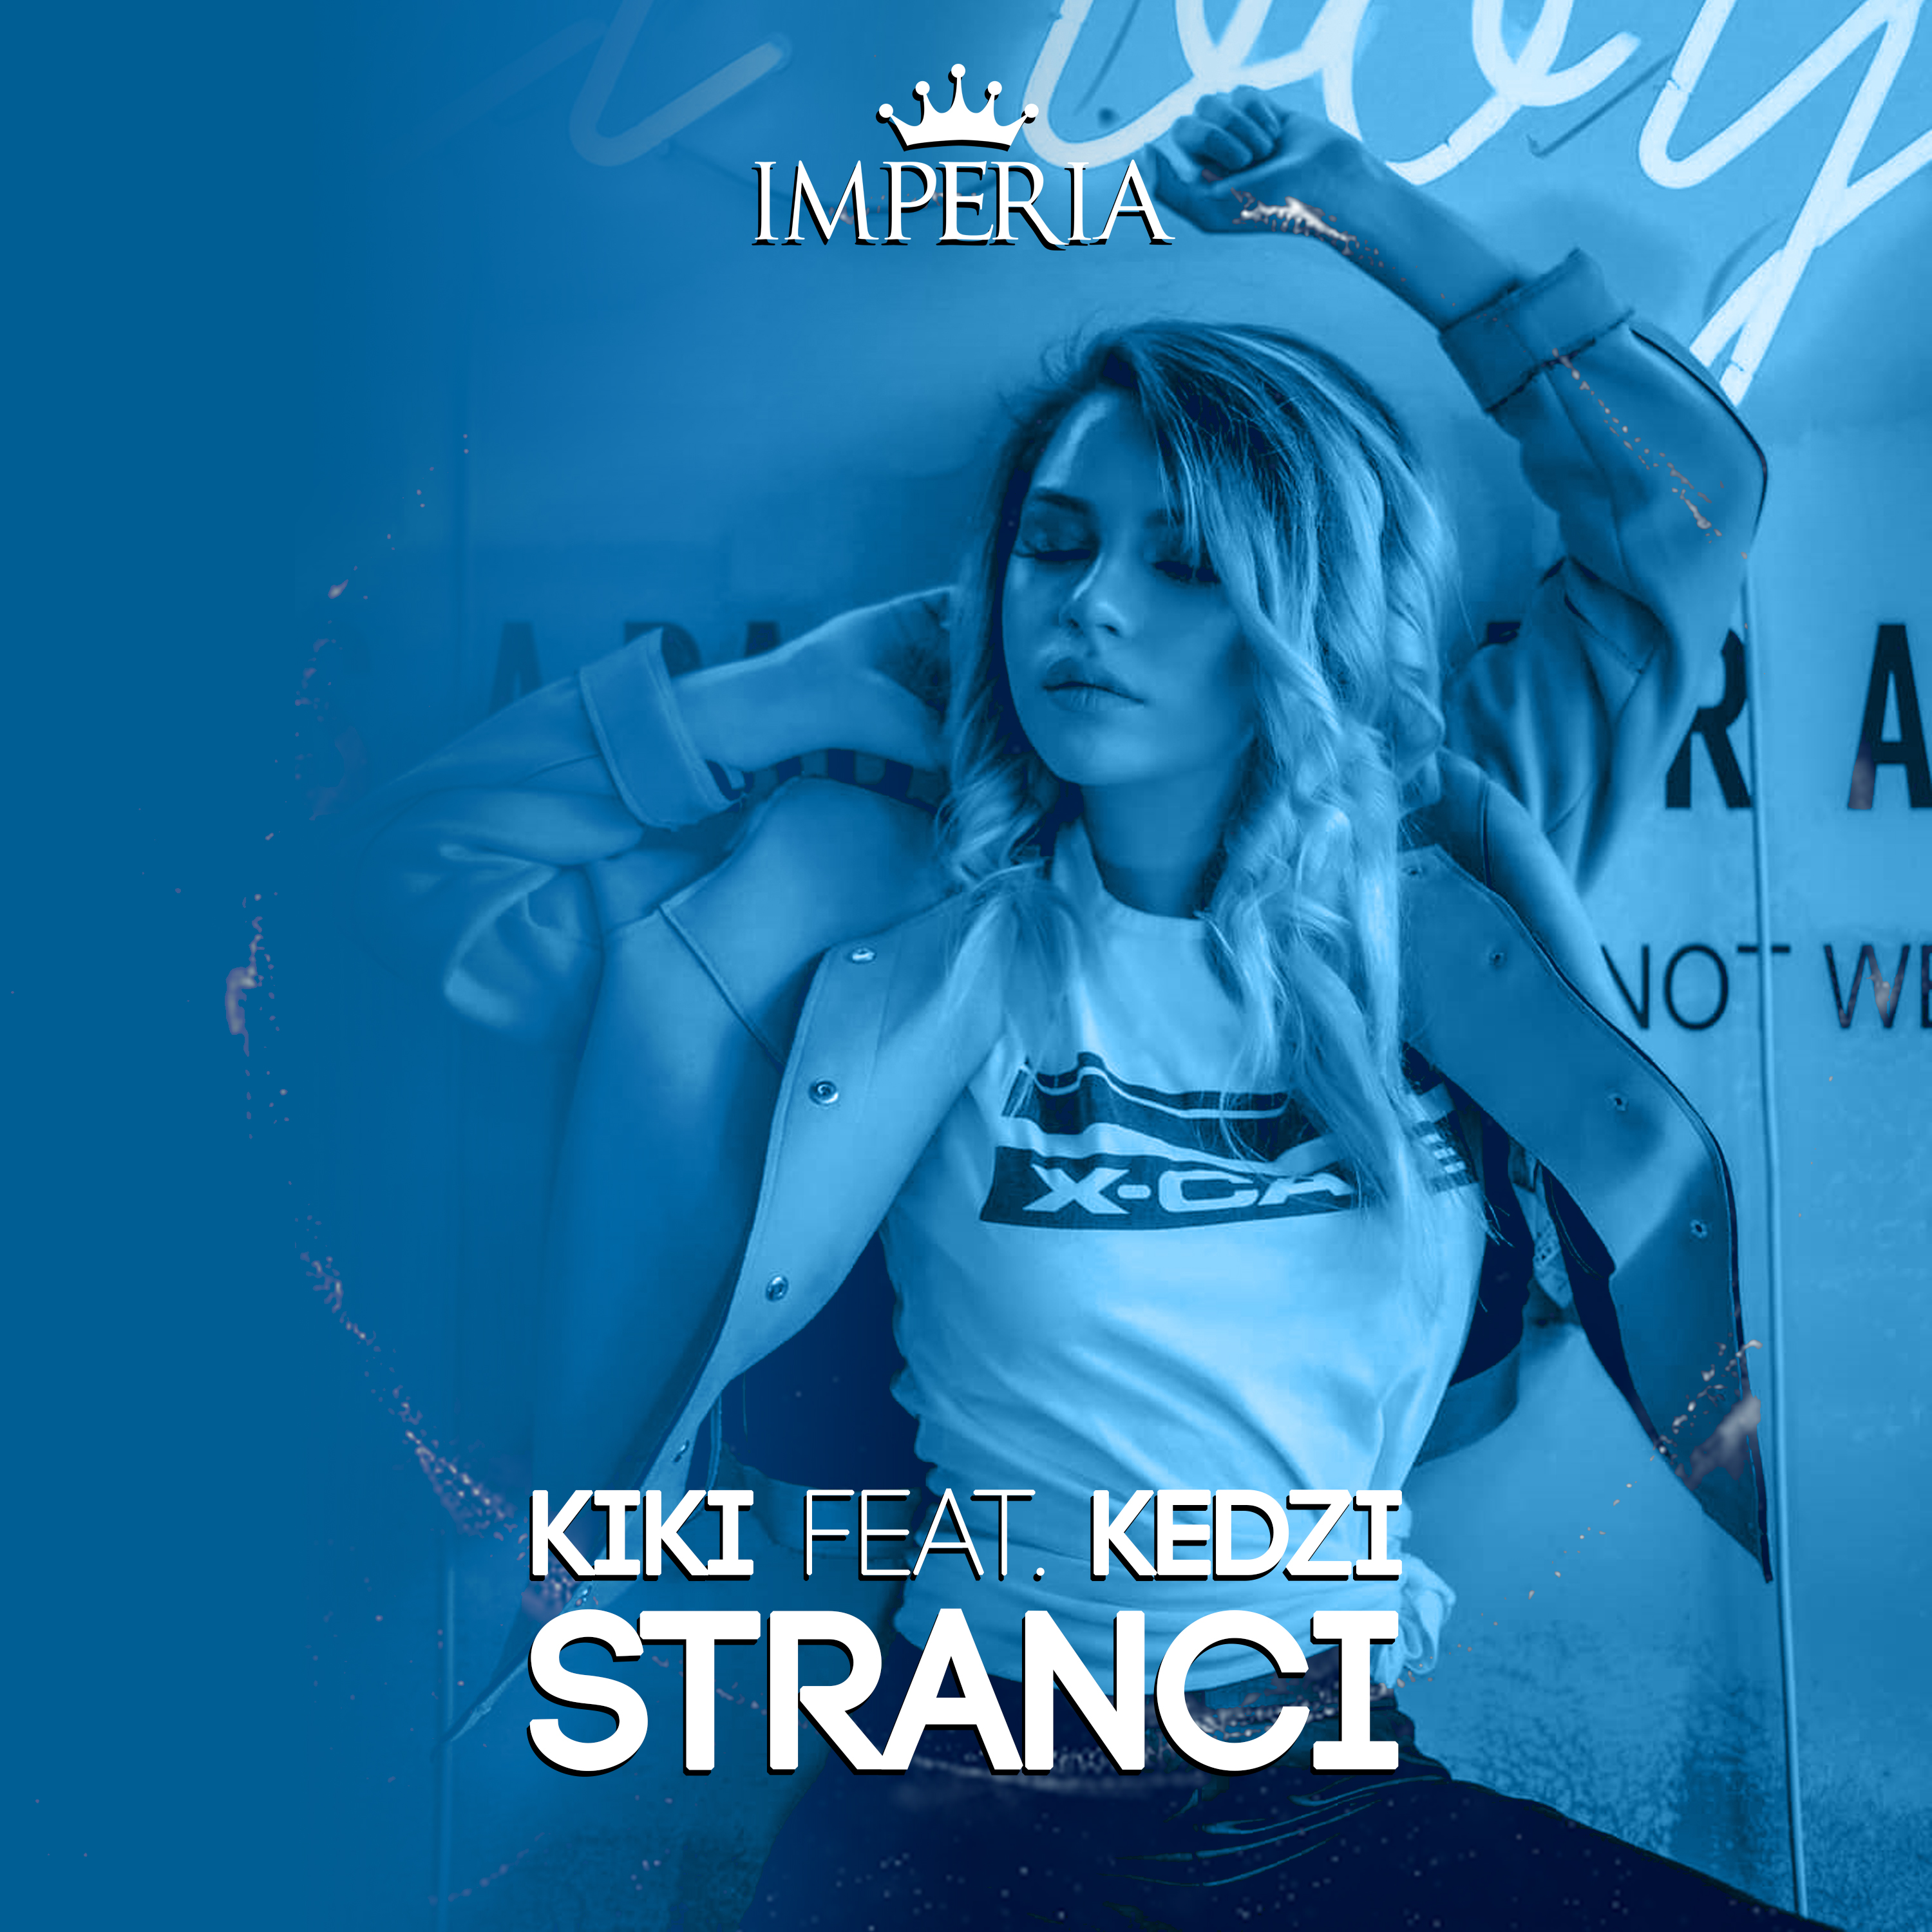 Kiki feat. Kedzi - Stranci - Listen on Spotify, Deezer, YouTube, Google Play Music and Buy on Amazon, iTunes Google Play | EMDC Network